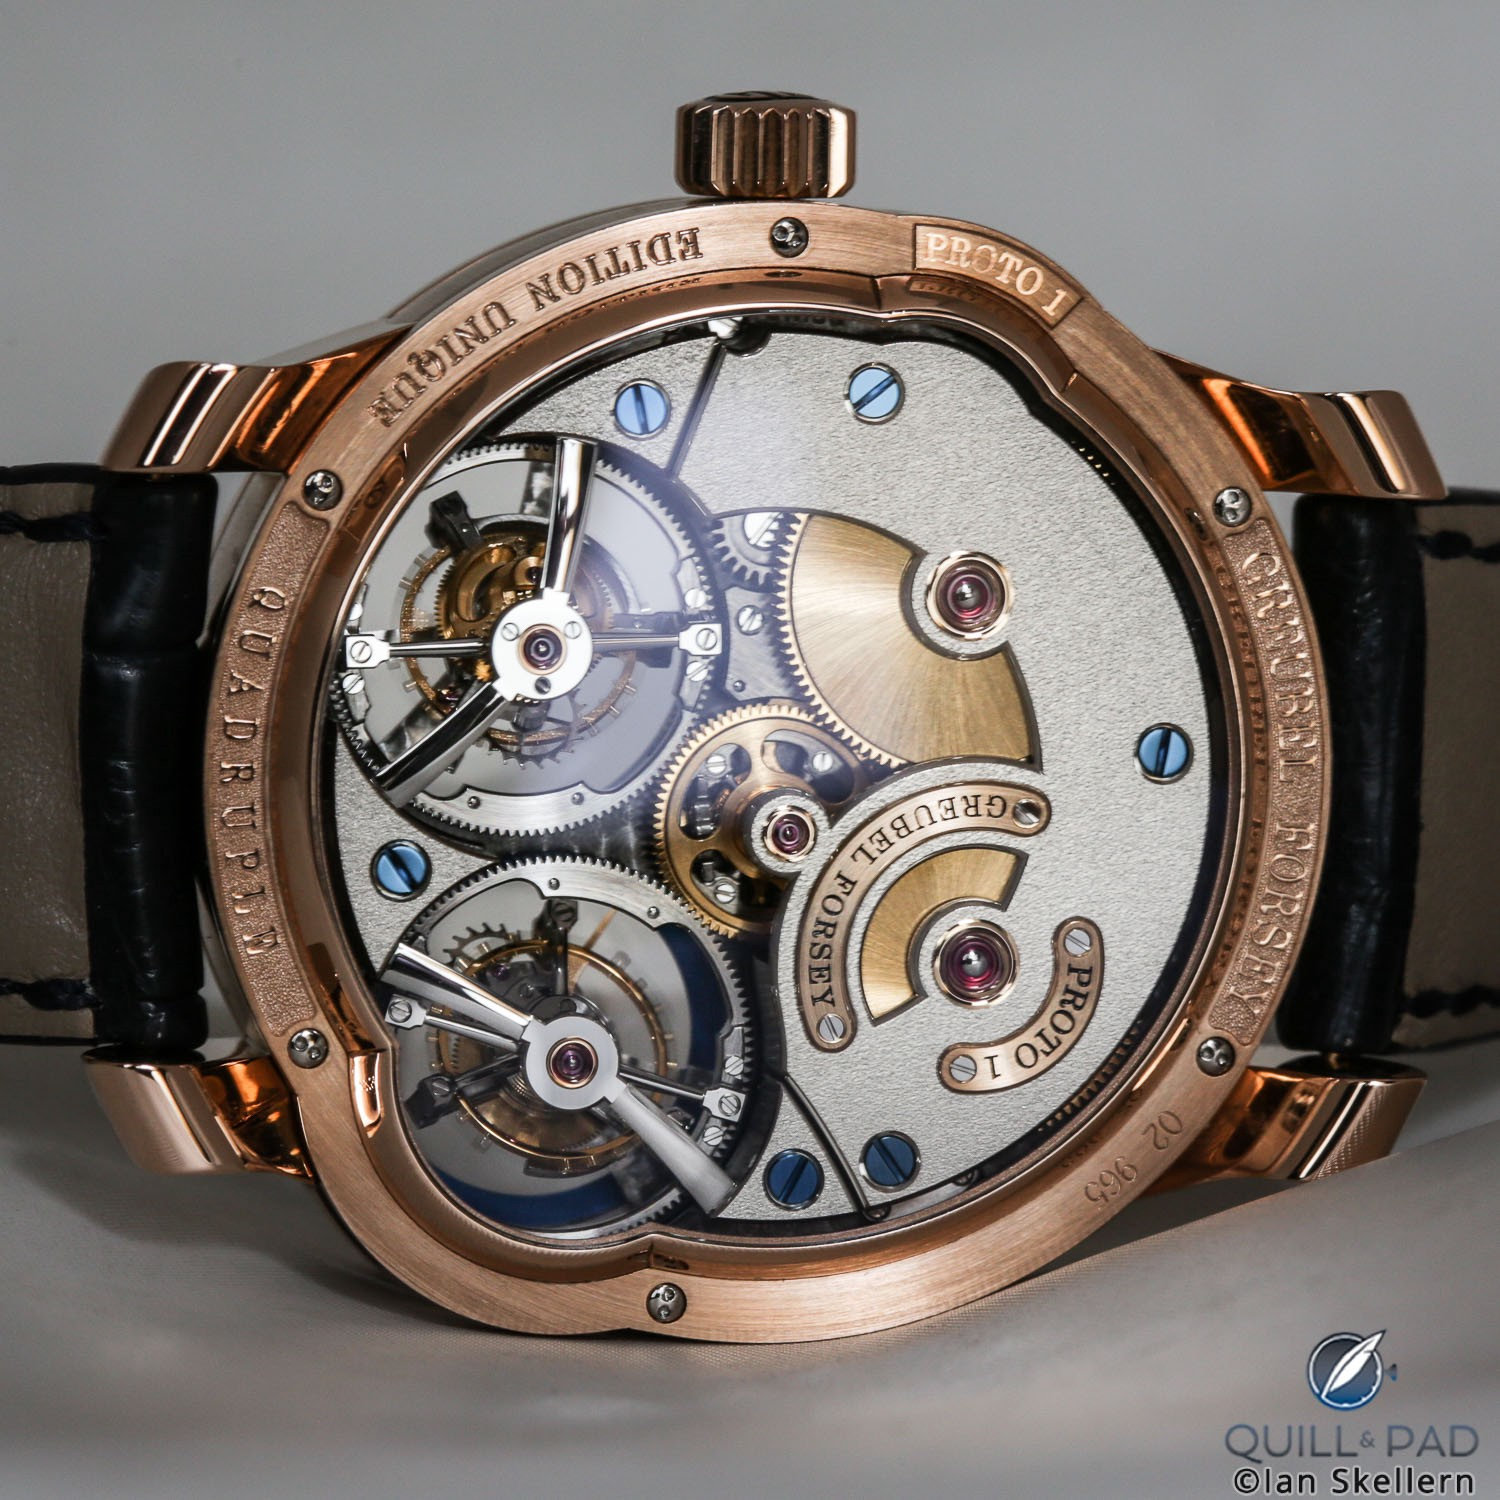 View through the display back of the Greubel Forsey Quadruple Tourbillon Blue